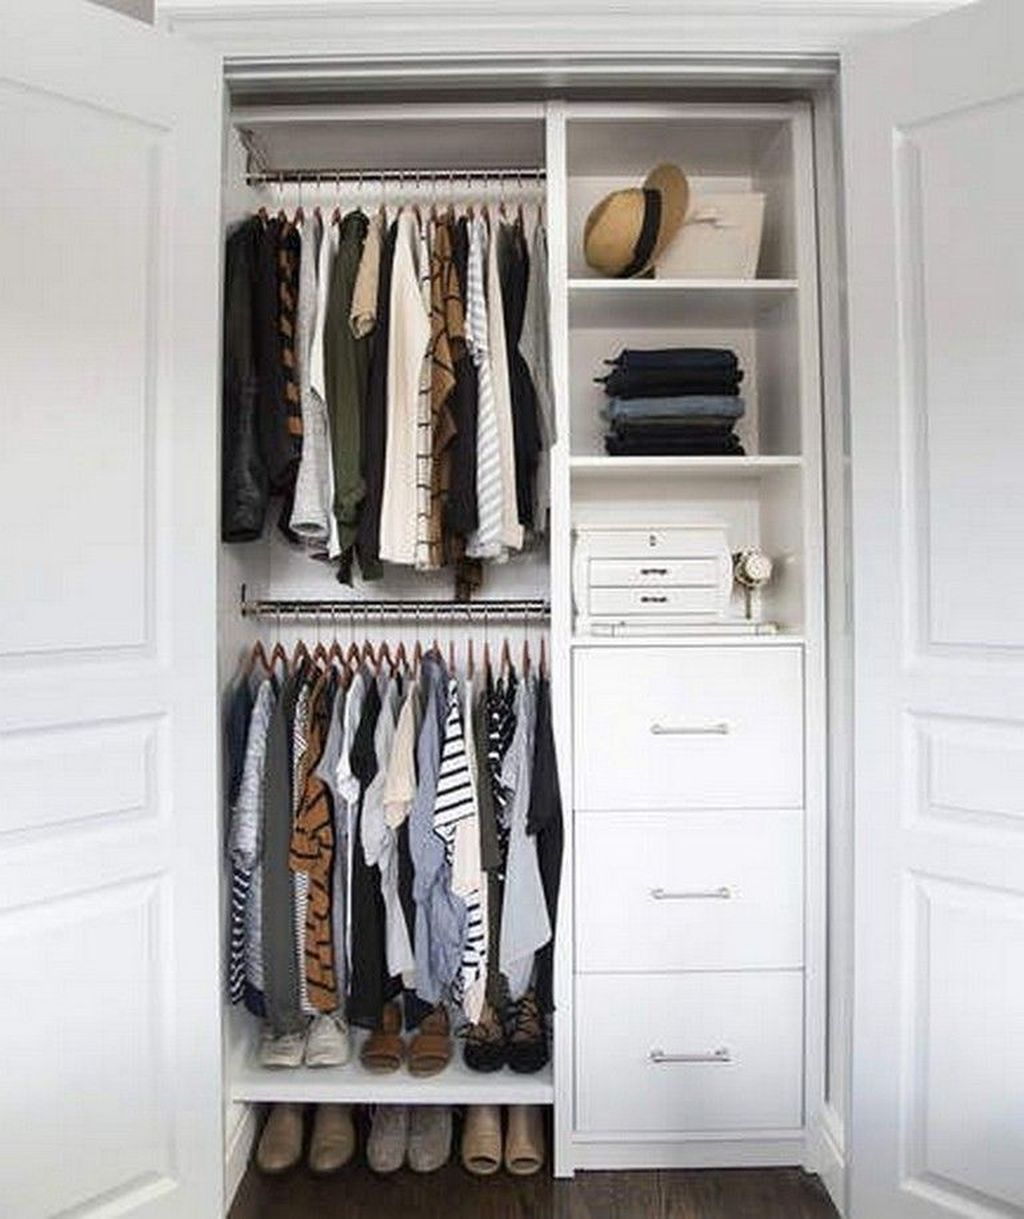 40 Best Ways To Makes Functional Small Closets Ideas Closet Small Bedroom Small Closet Organization Bedroom Small Closet Space